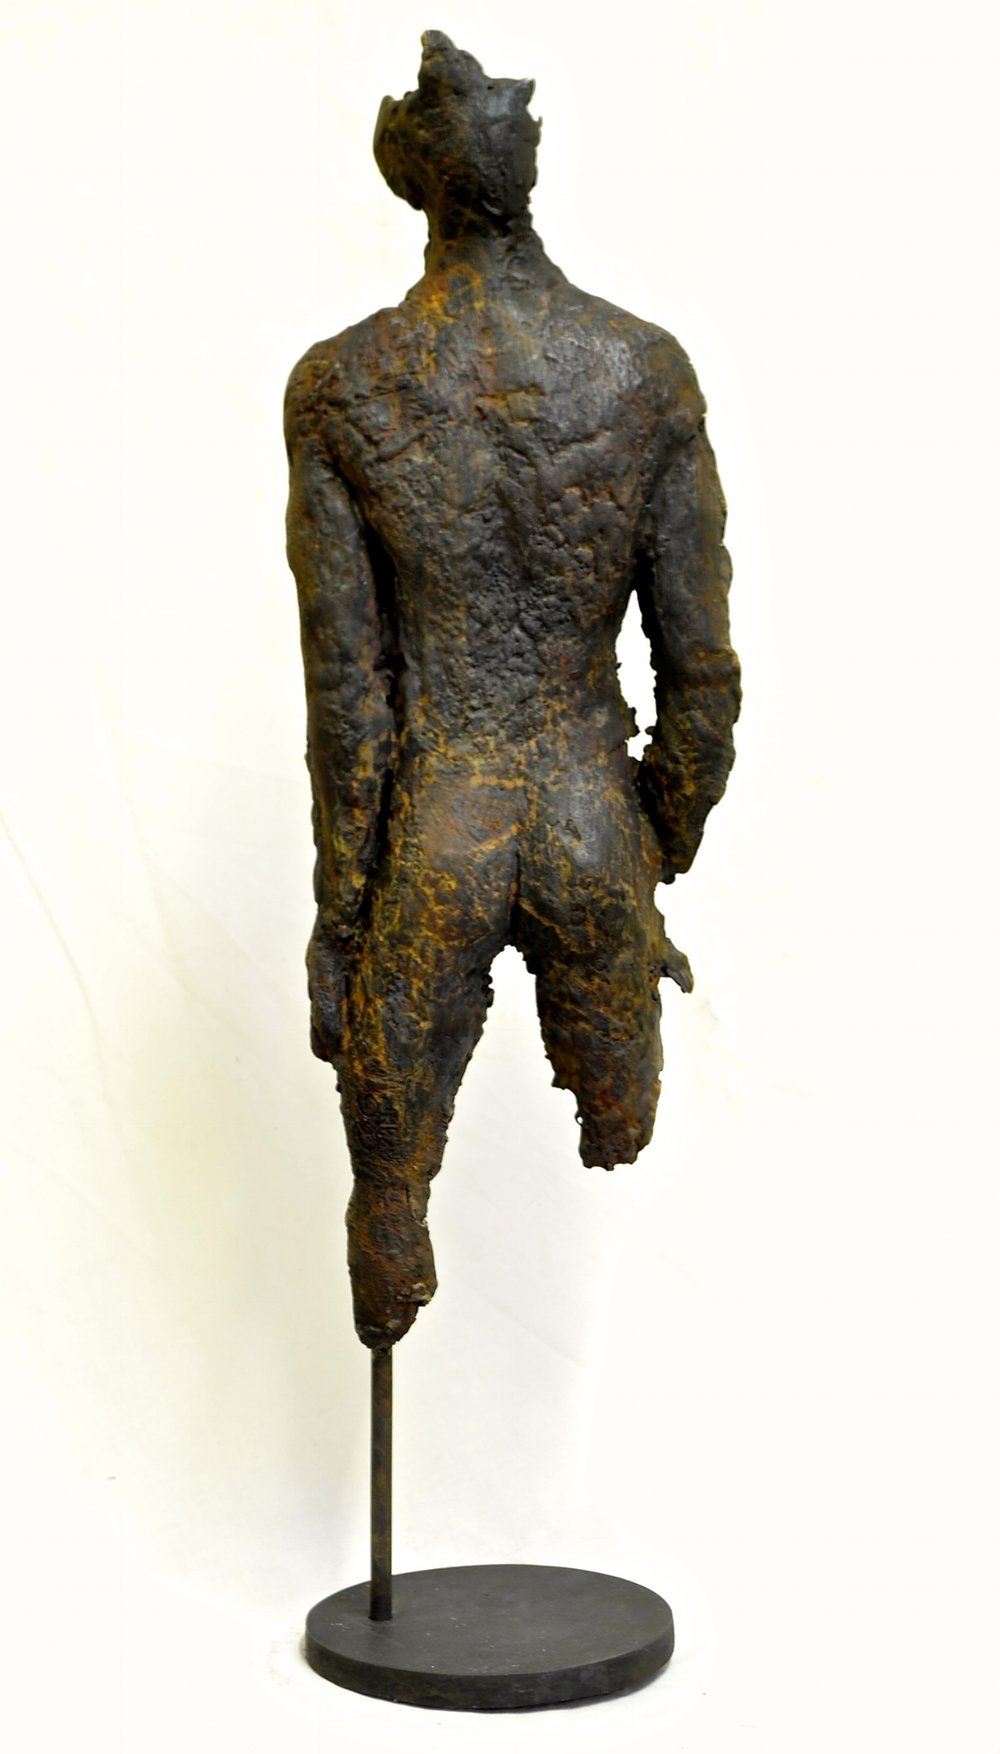 Image 1. bronze 19cm on 10cm base by Catherine Greene 2